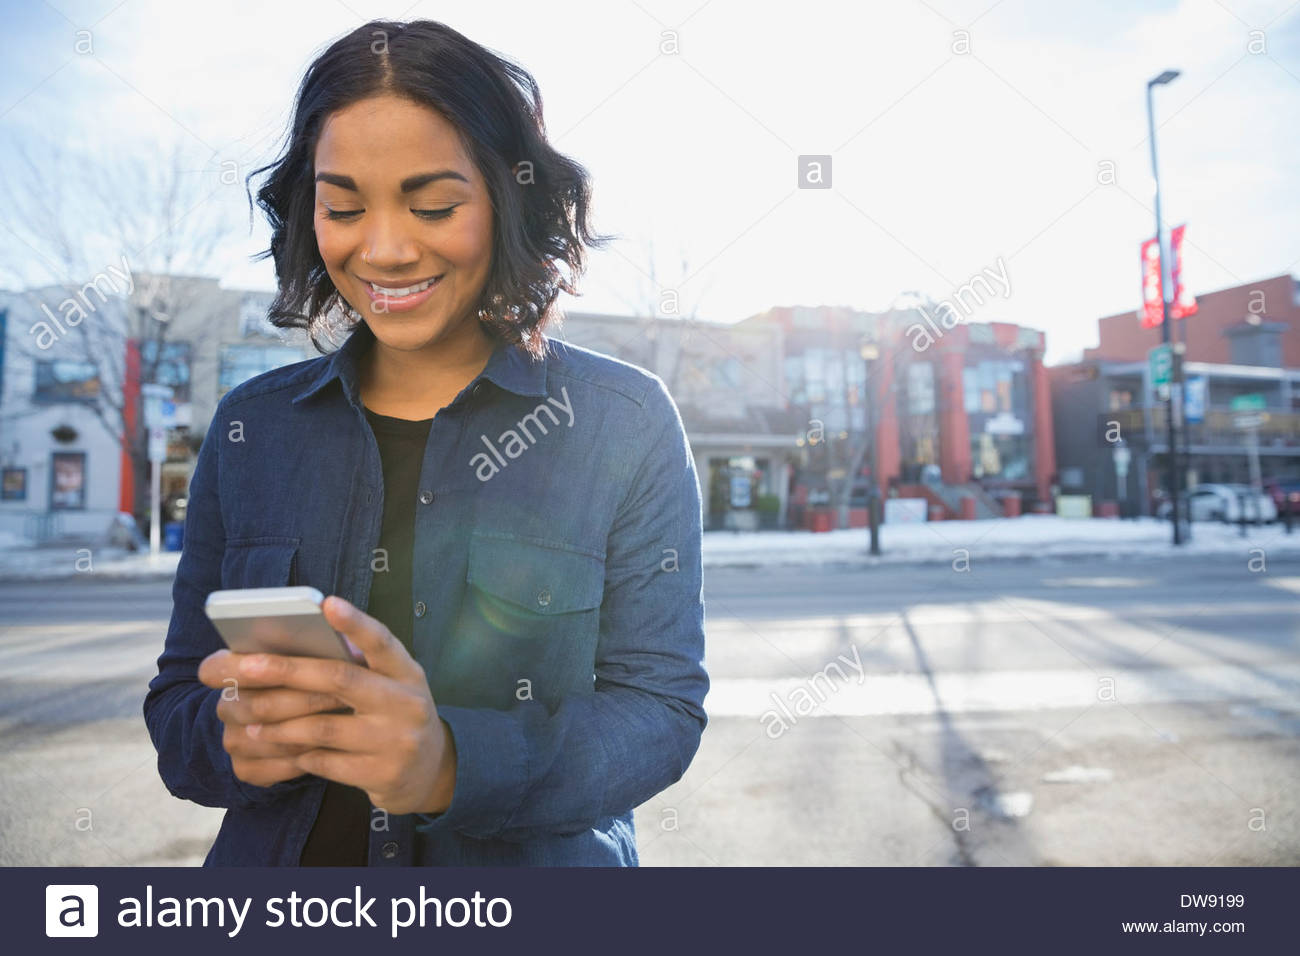 Smiling woman text messaging on city street - Stock Image